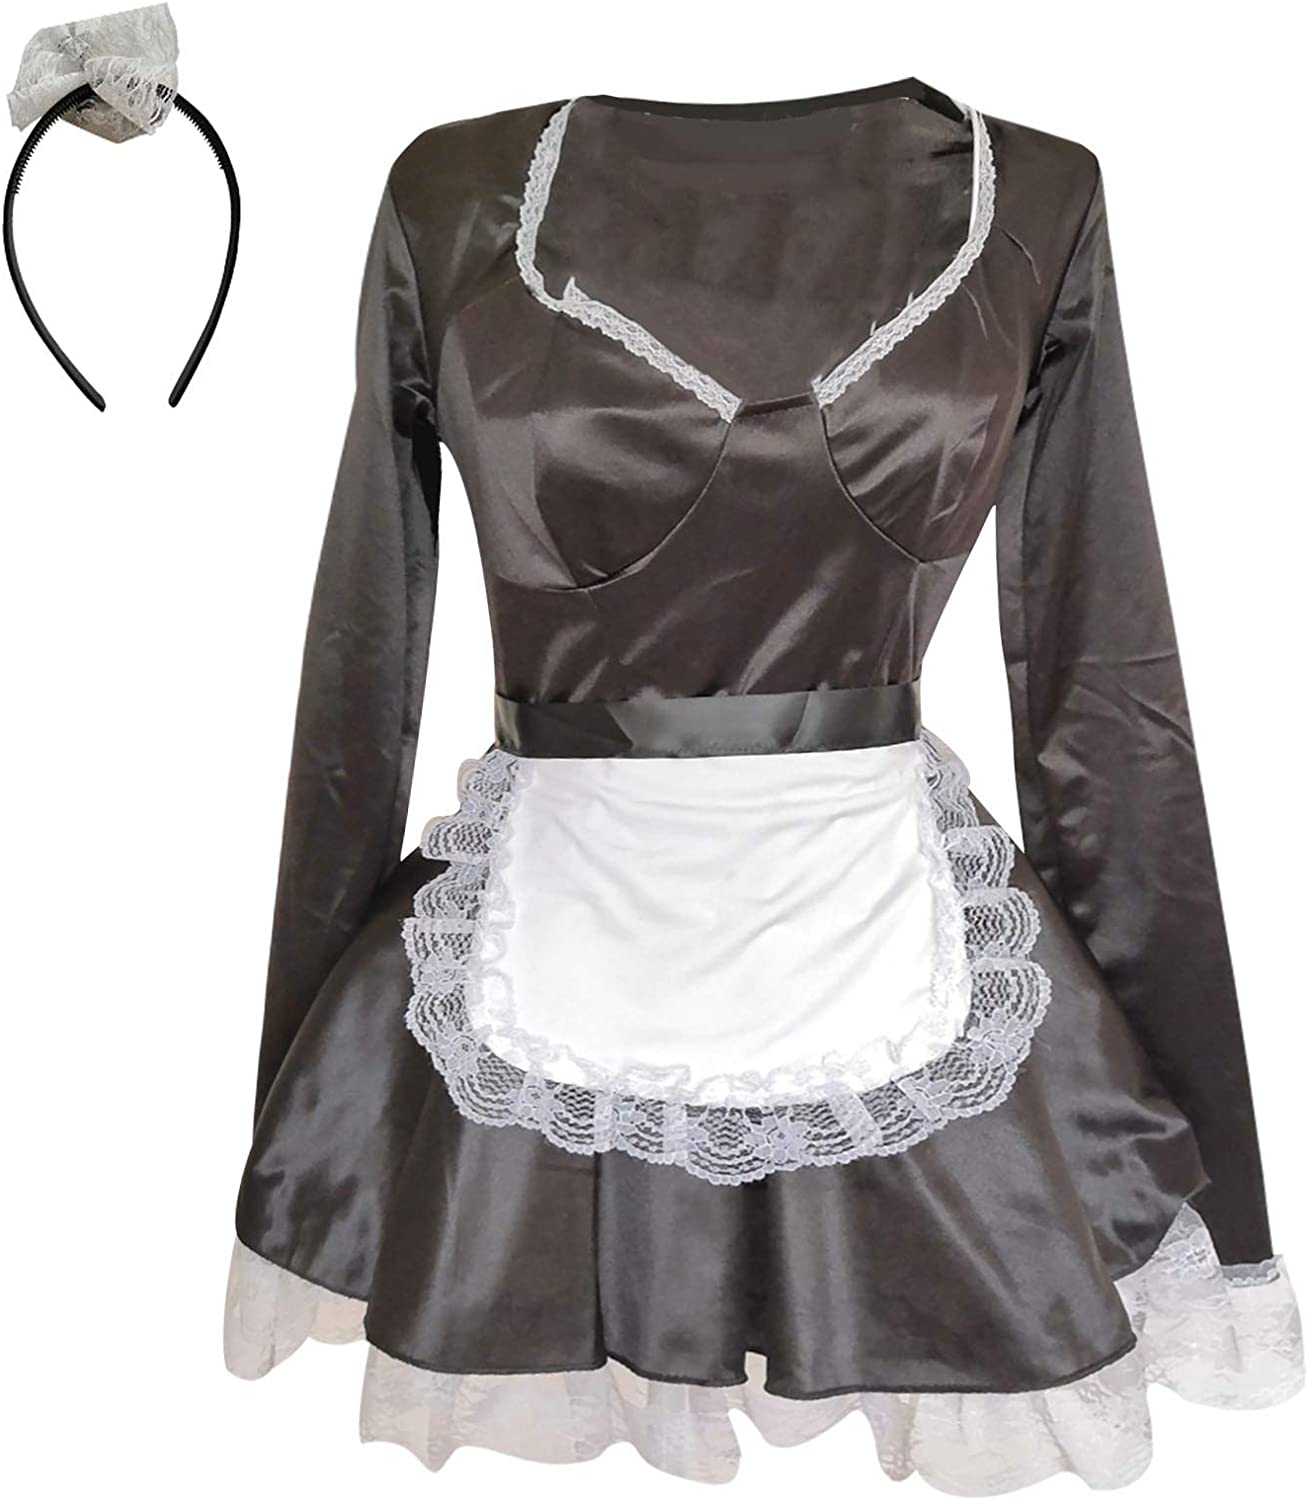 Ladies Erotic Lingerie Sexy Temptation Un Super beauty product Boston Mall restock quality top Cosplay Maid One-Piece